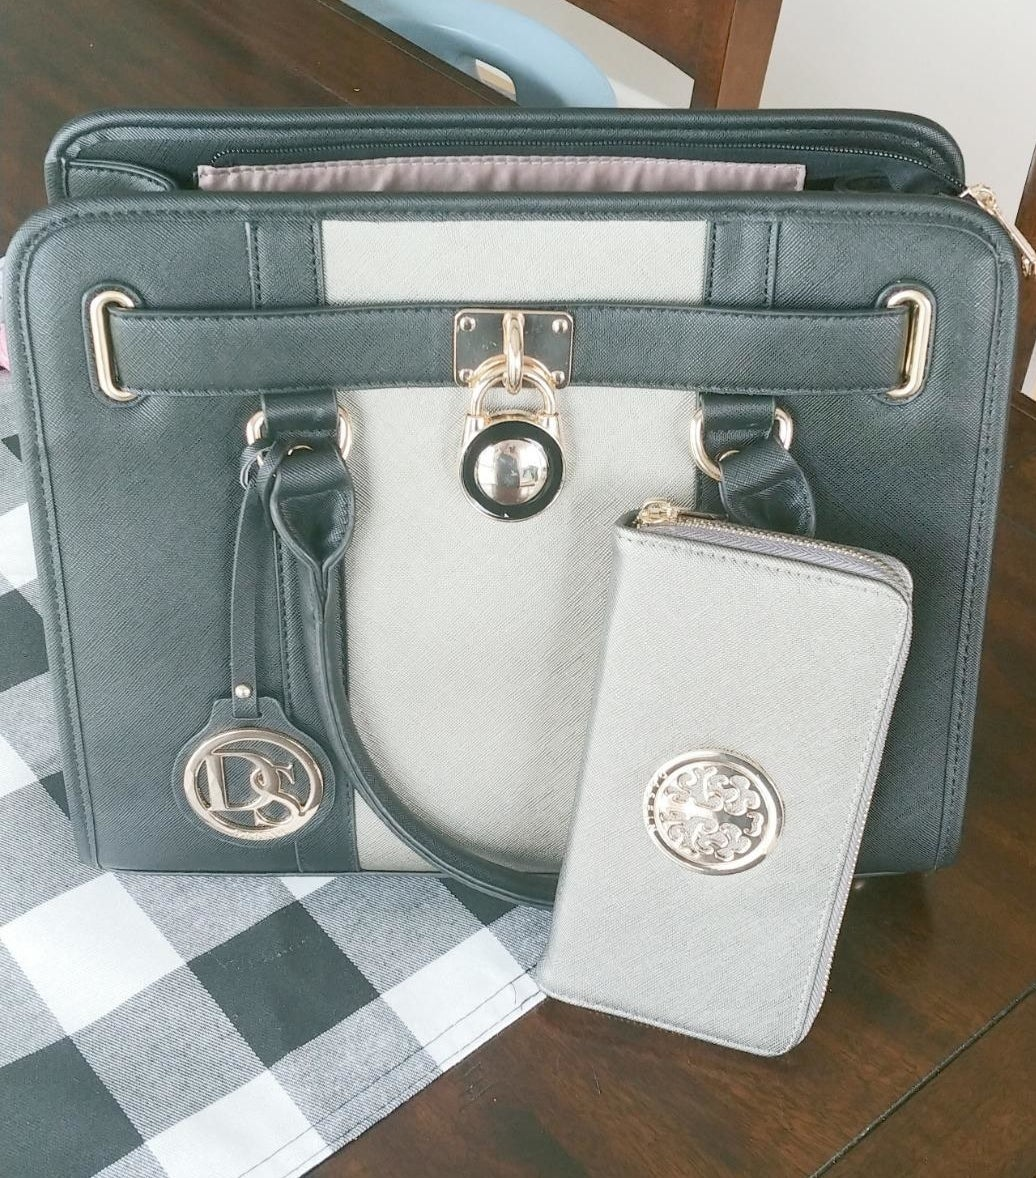 Review photo of the green handle satchel bag and matching wallet